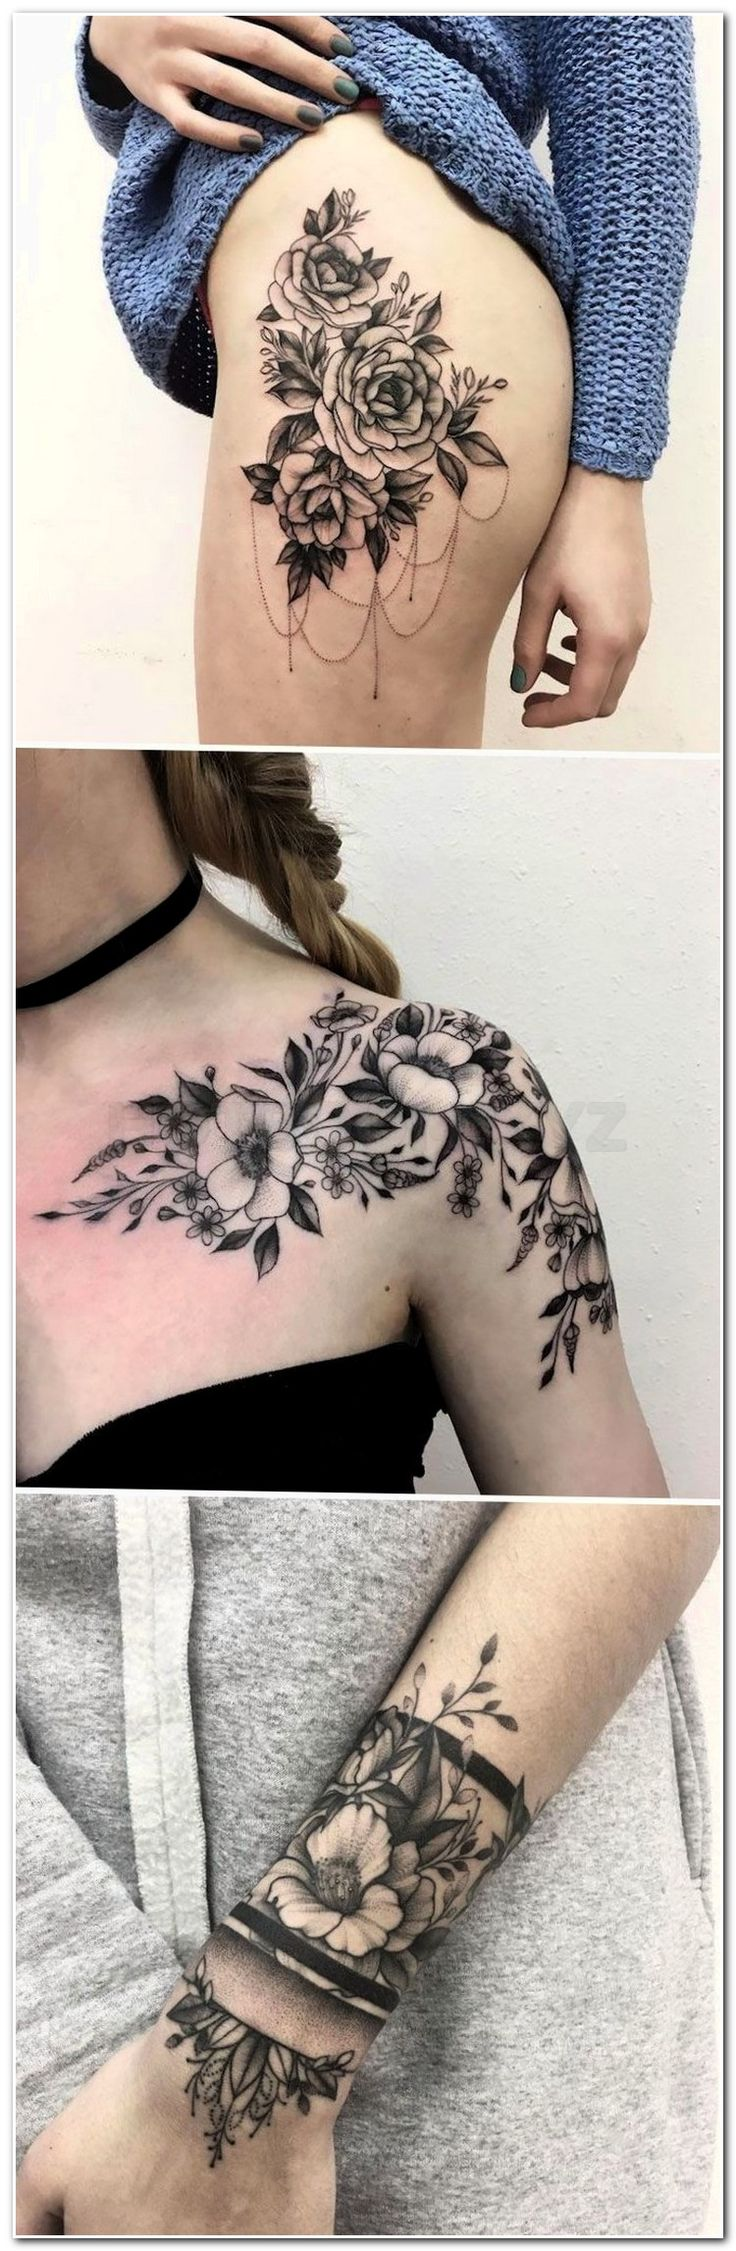 25 best ideas about guy arm tattoos on pinterest tatto sleeve arm tattoo ideas and left arm. Black Bedroom Furniture Sets. Home Design Ideas